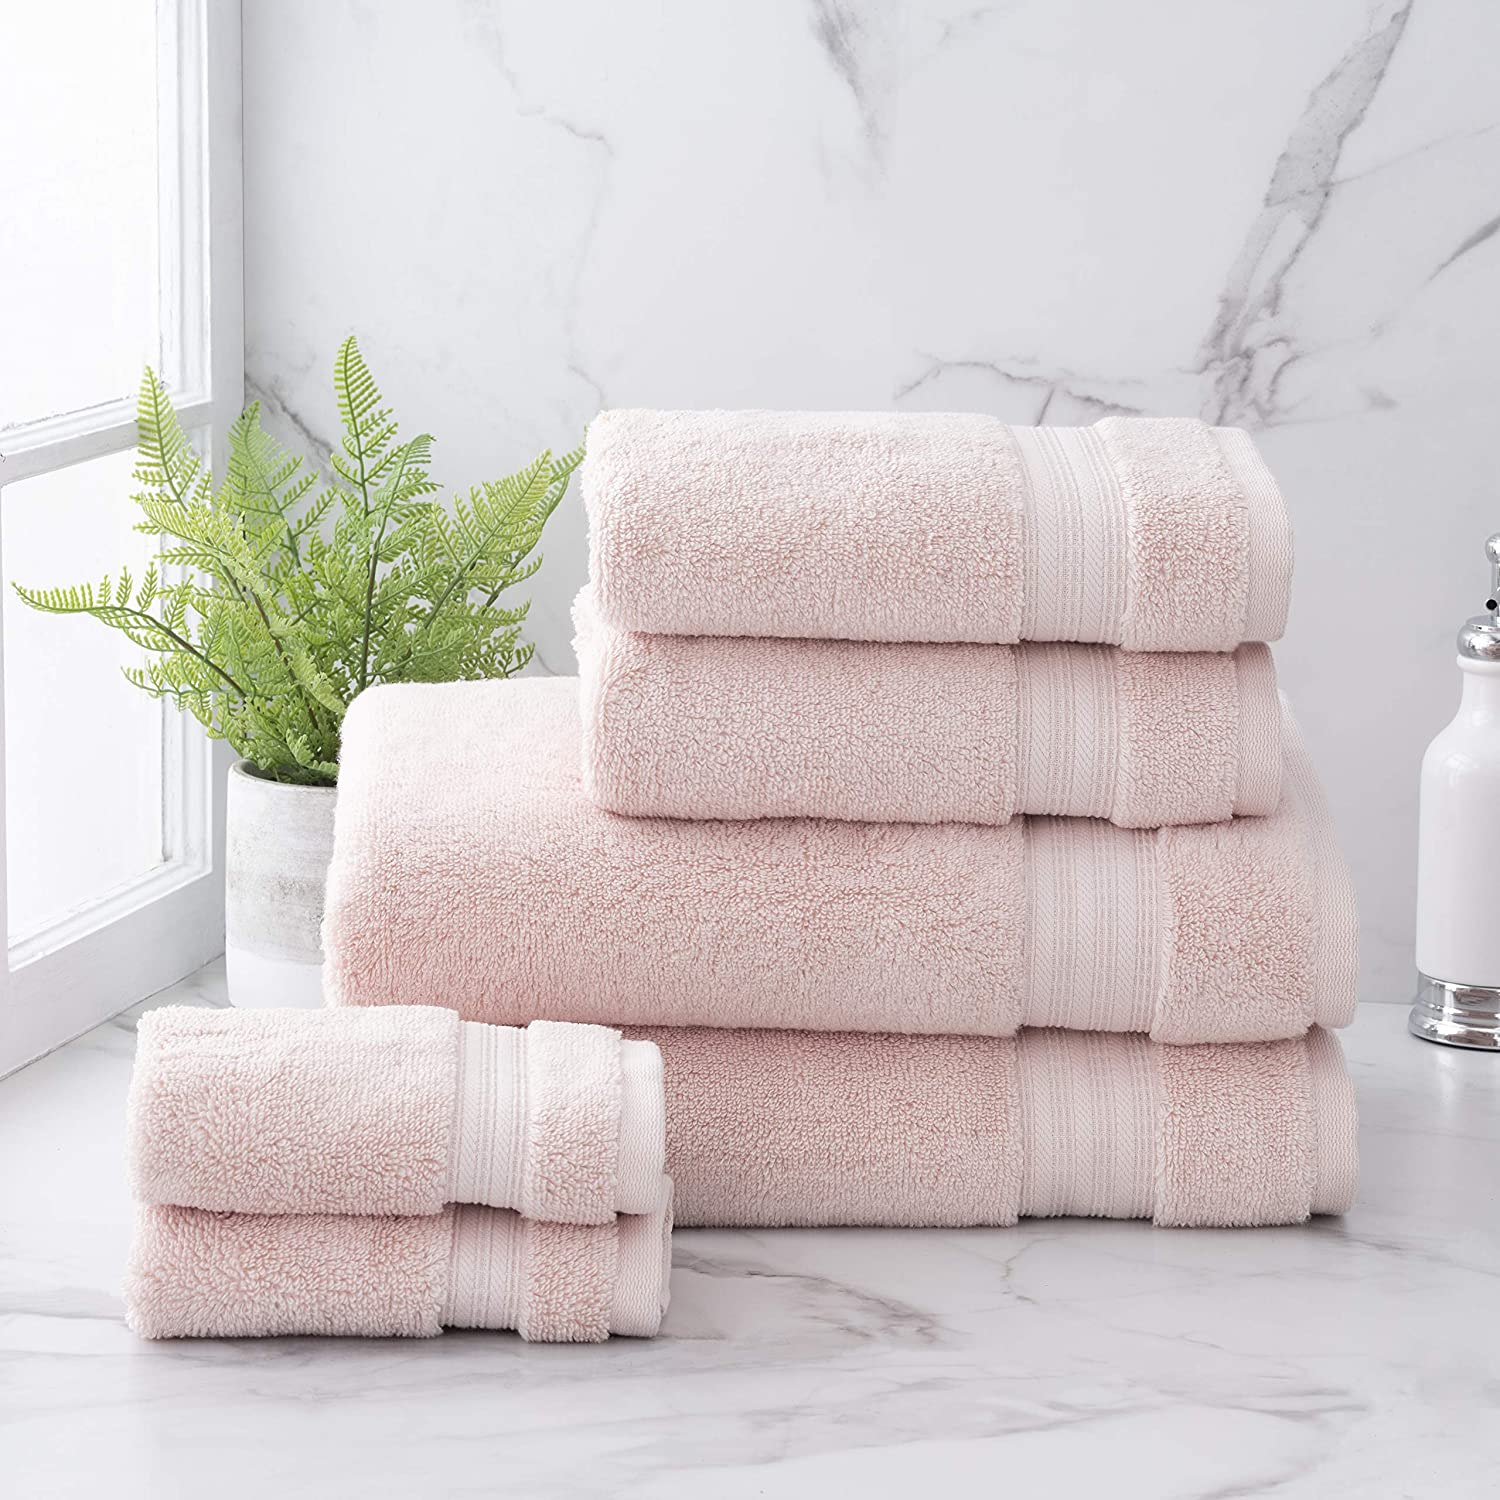 Welhome Cotton Rayon from Bamboo Bath Towel (Blush) - Set of 6 -Soft & Fluffy -Highly Absorbent -Fade Resistant - Durable - Machine Washable - 2 Bath - 2 Hand - 2 Wash Towels